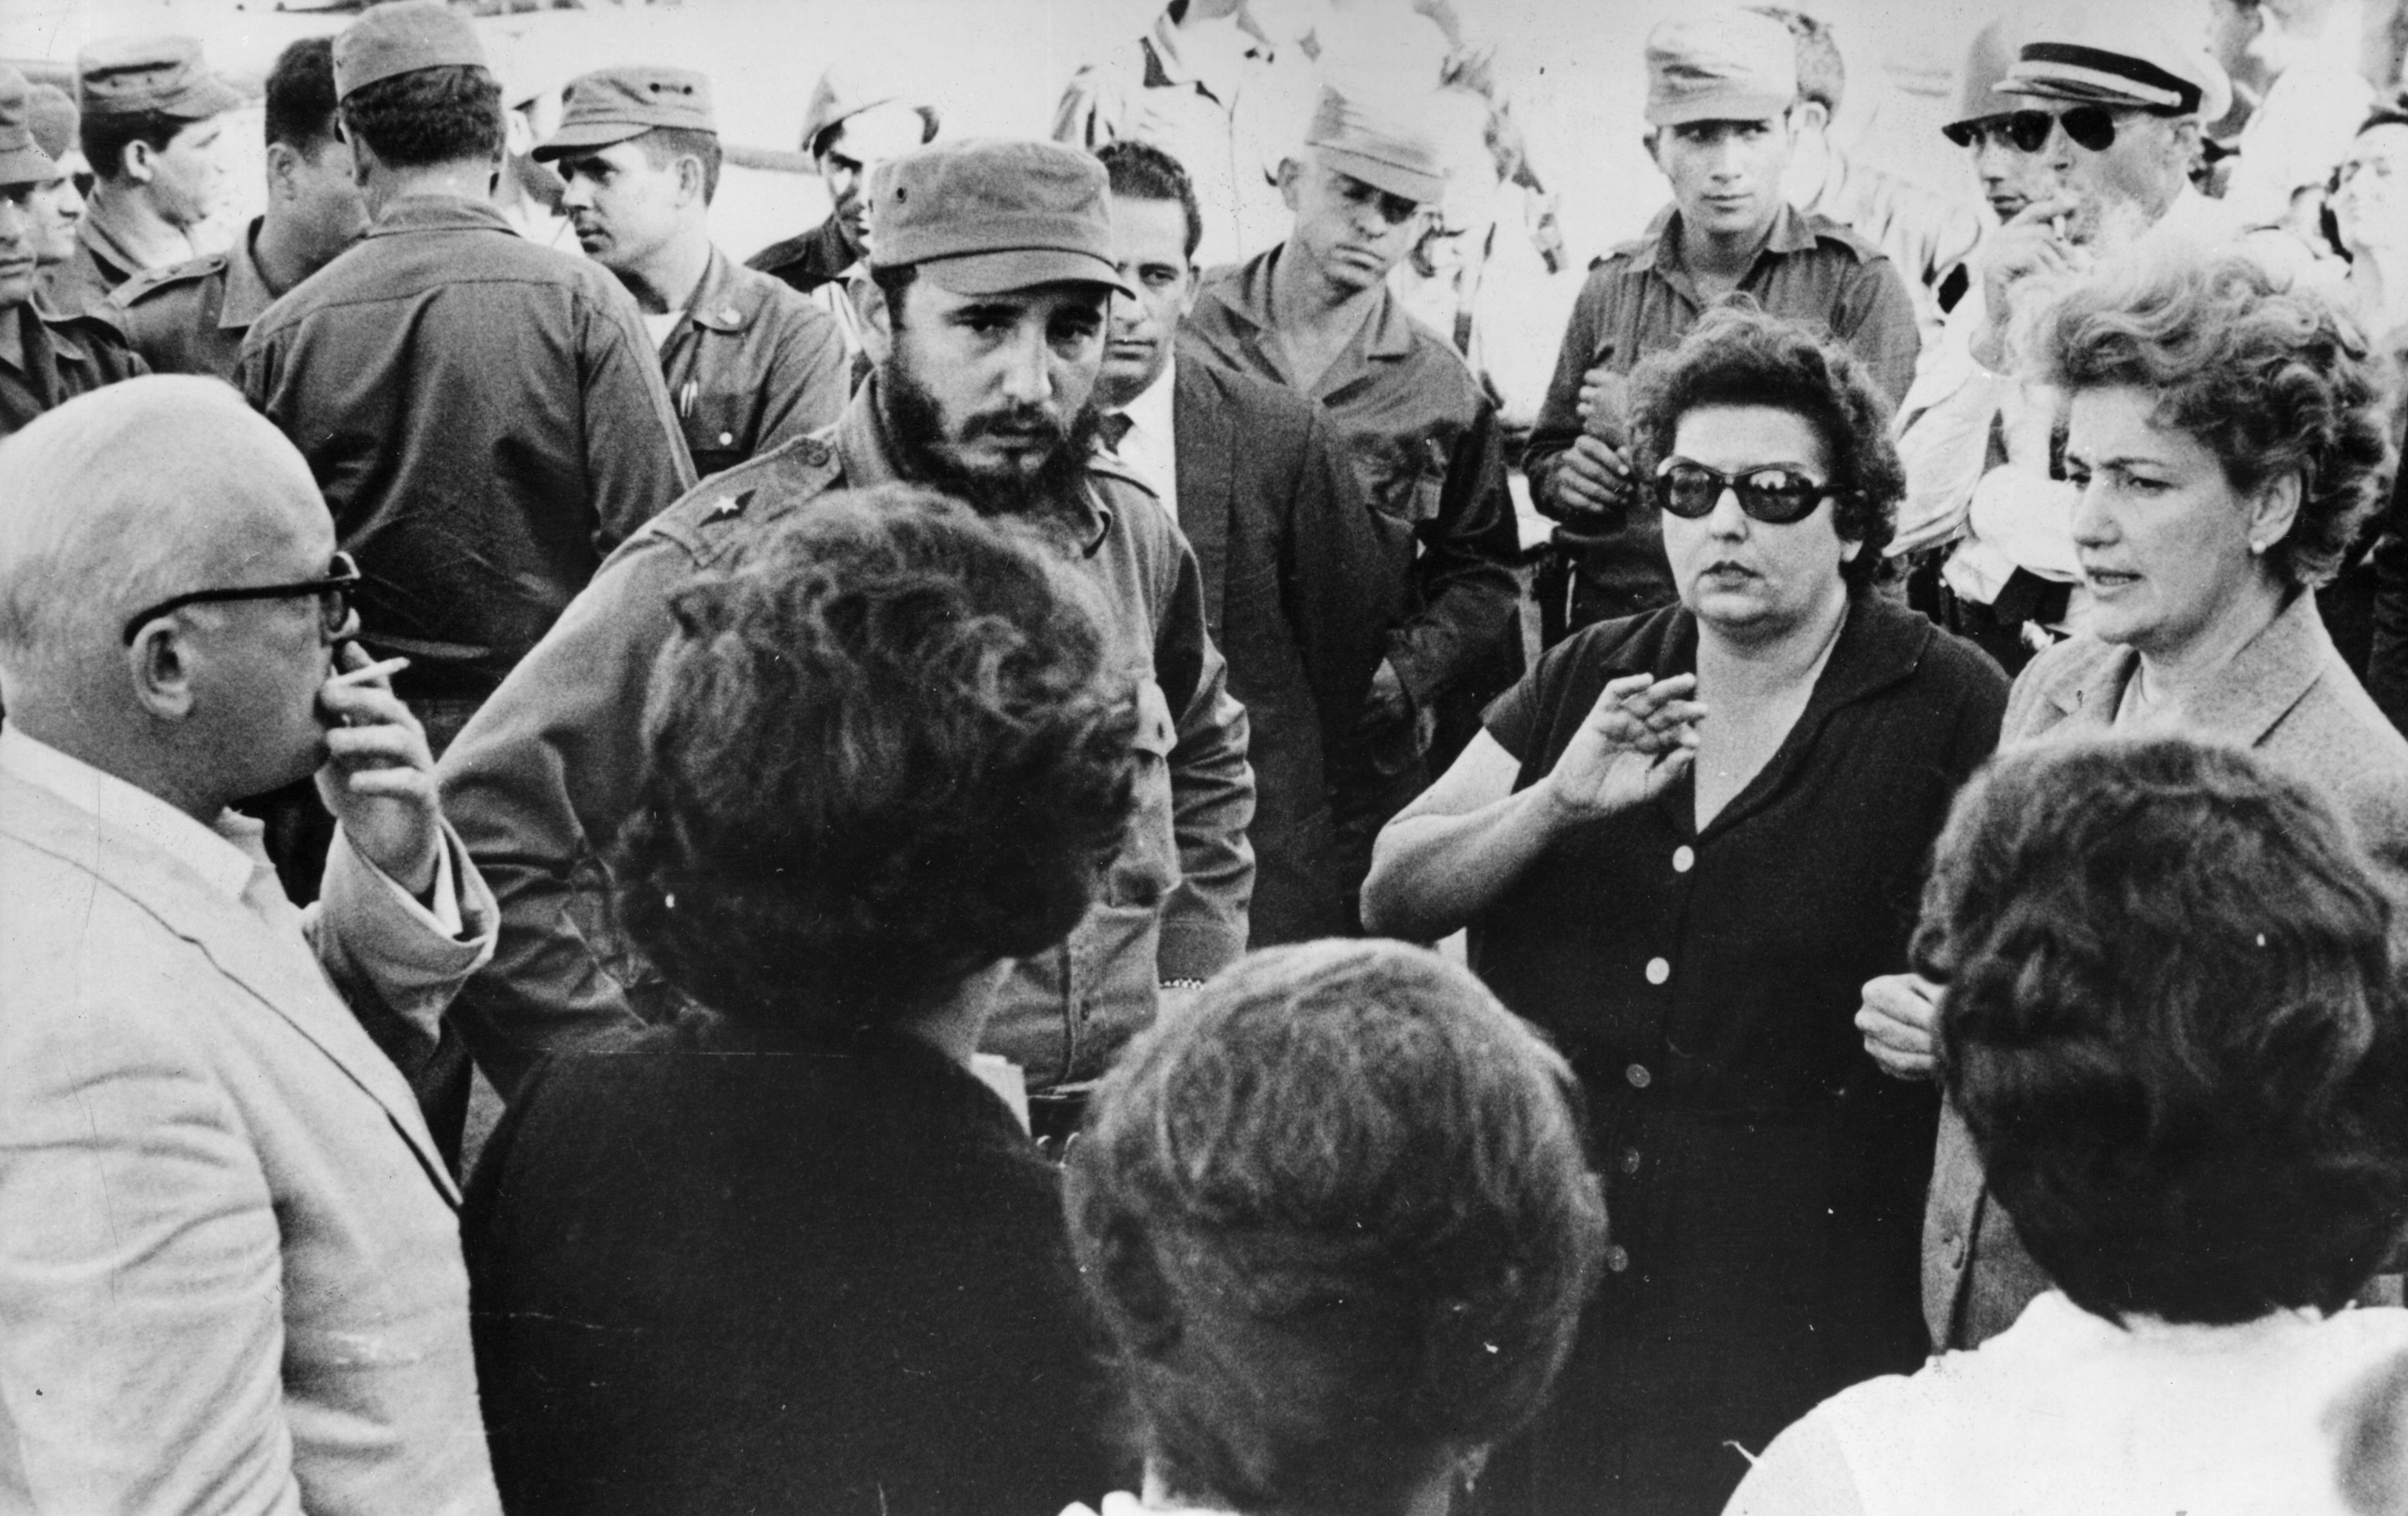 3rd January 1963: Cuban prime minister Fidel Castro talking with parents of some of the American prisoners held hostage for food and supplies by the Cuban government after the abortive emigre invasion at the Bay of Pigs.